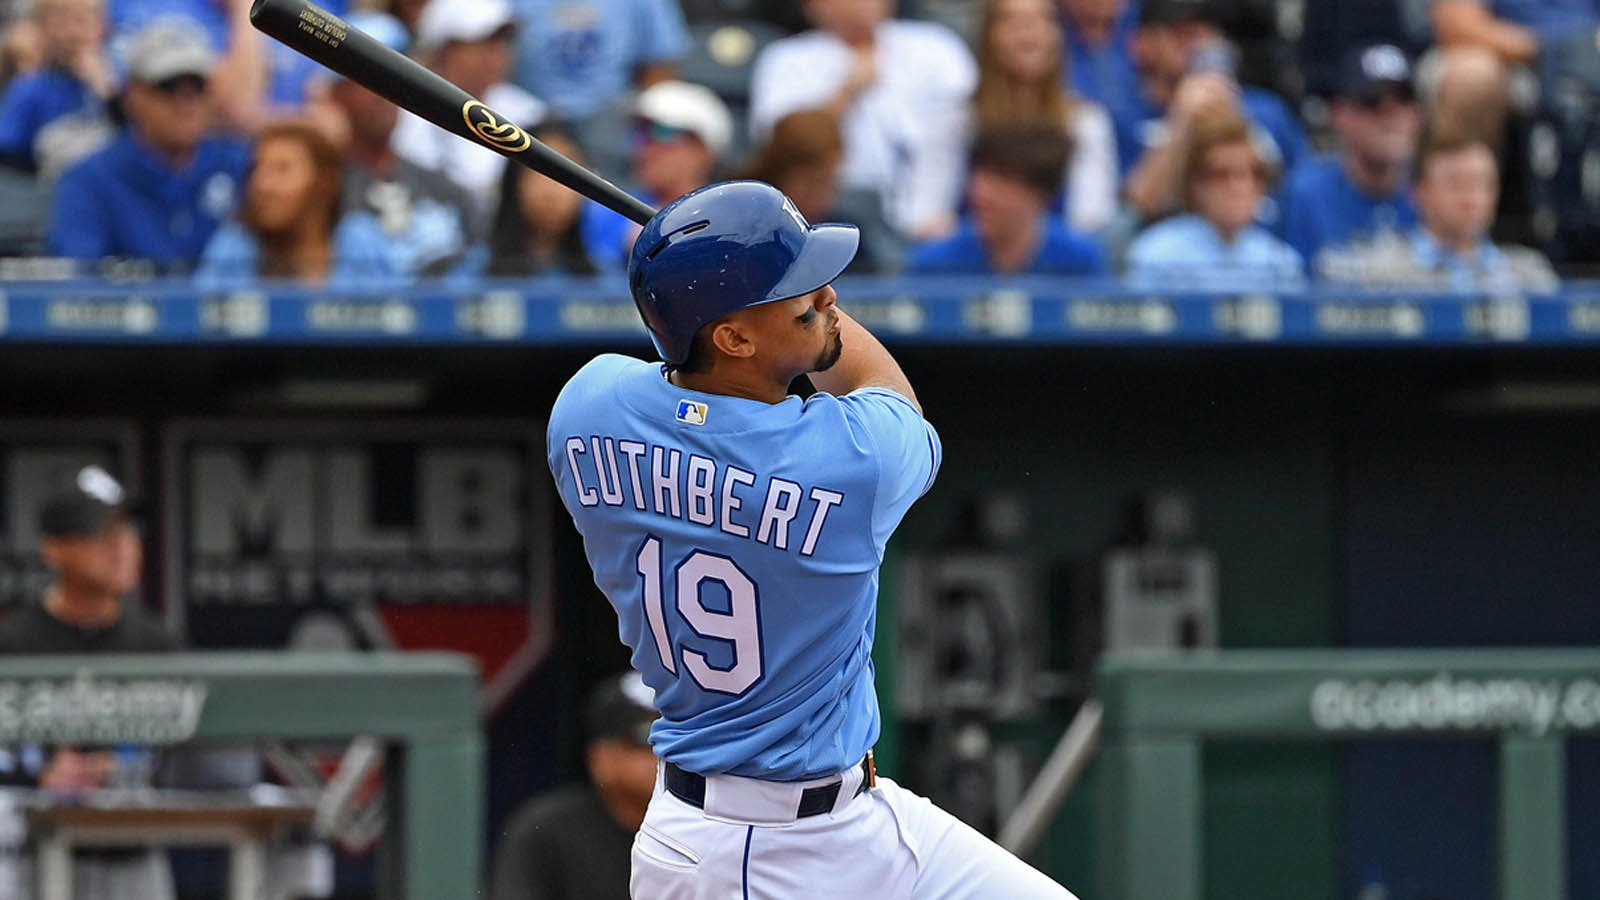 Royals select Cuthbert from Omaha, DFA Owings | FOX Sports